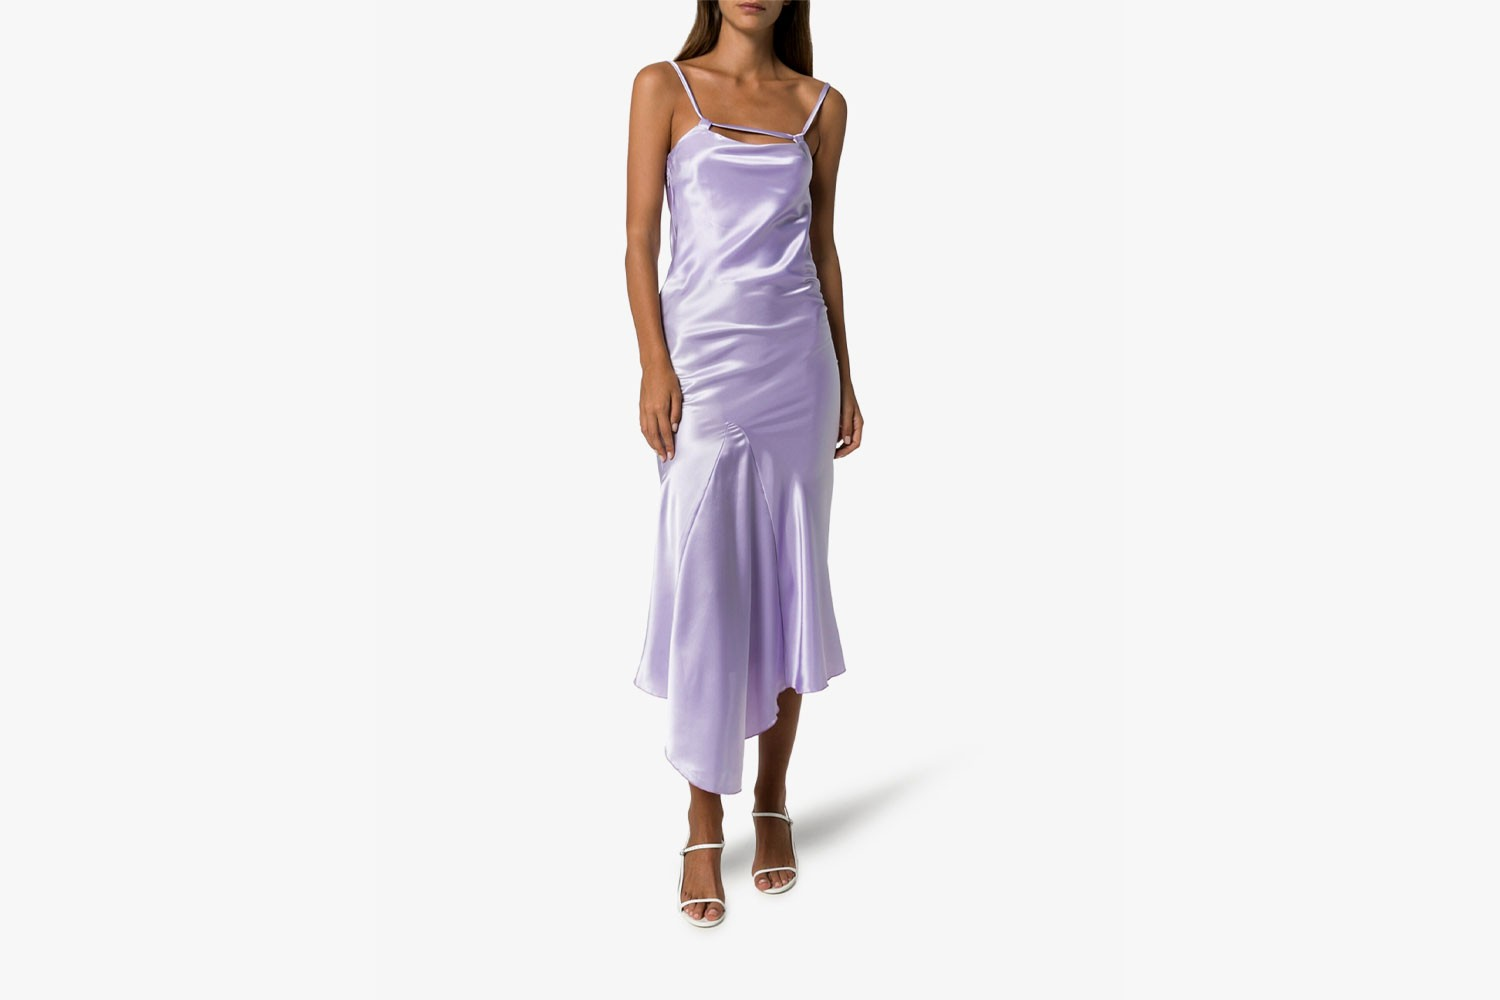 best slip dresses affordable summer streetwear casual formal reformation staud t by alexander wang